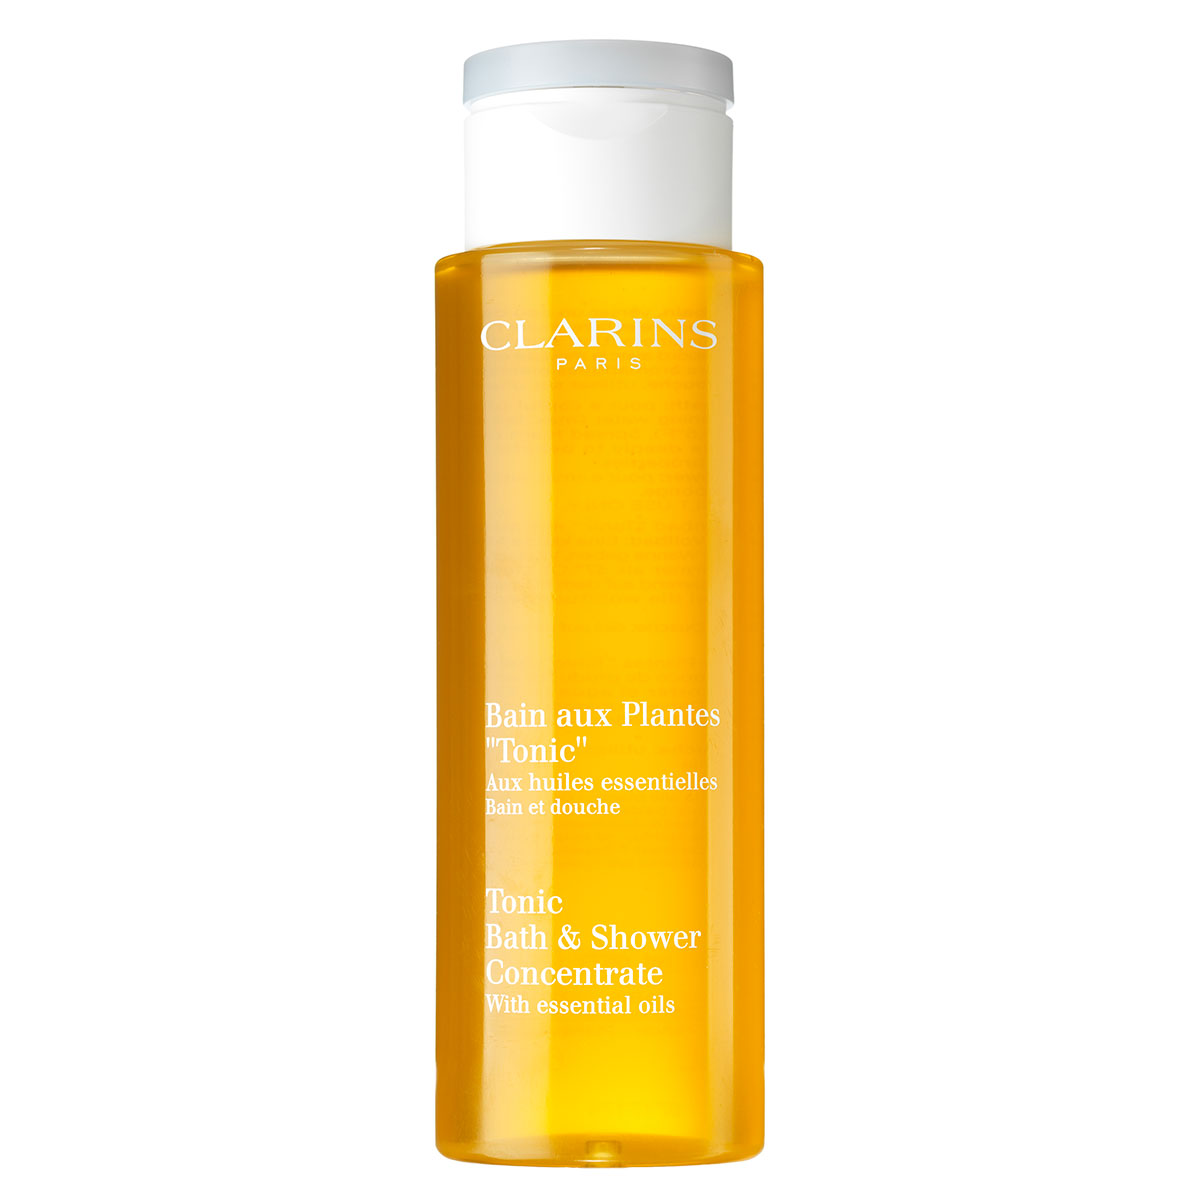 Billede af Clarins Tonic Bath & Shower Concentrate - 200 ml